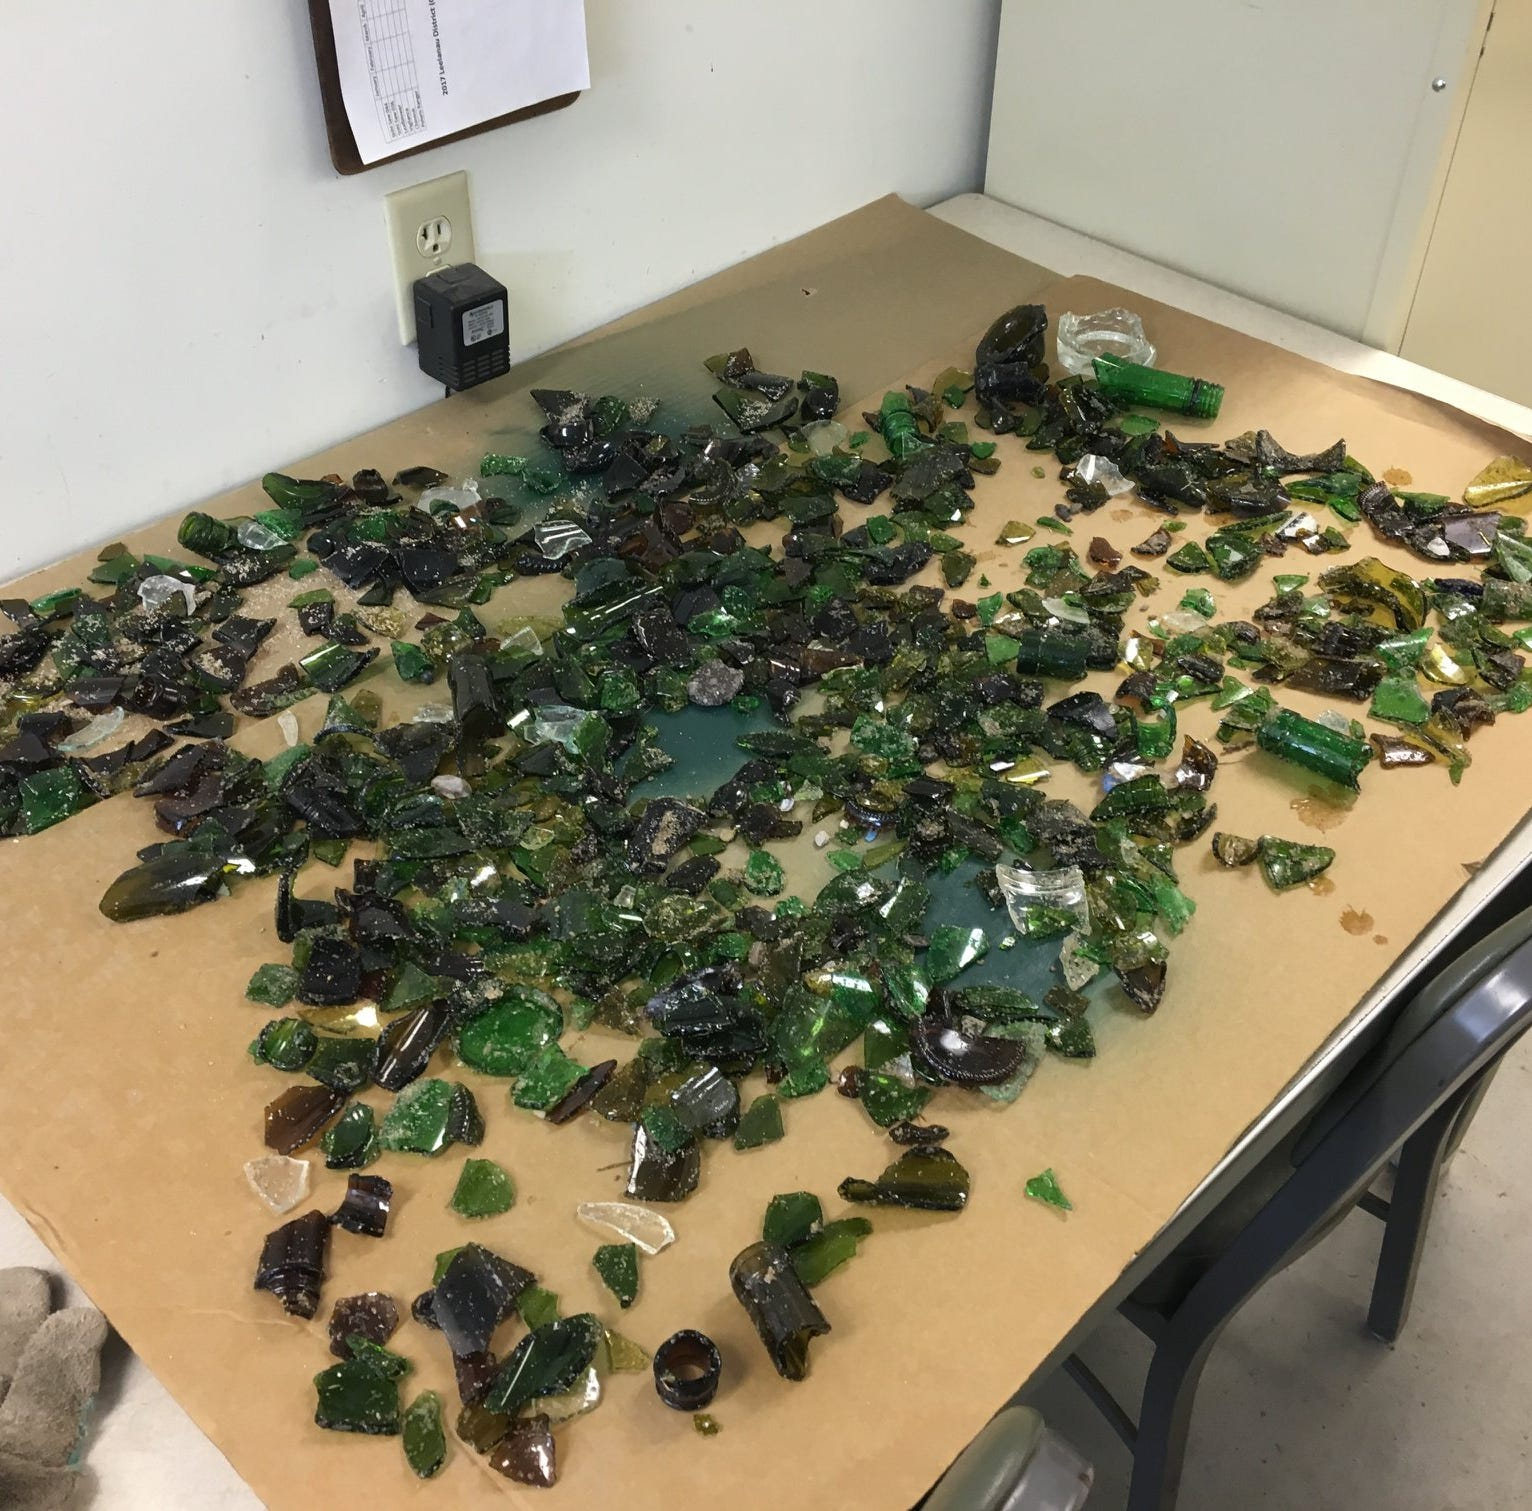 Shattered glass 'deliberately' spread along Sleeping Bear Dunes beach